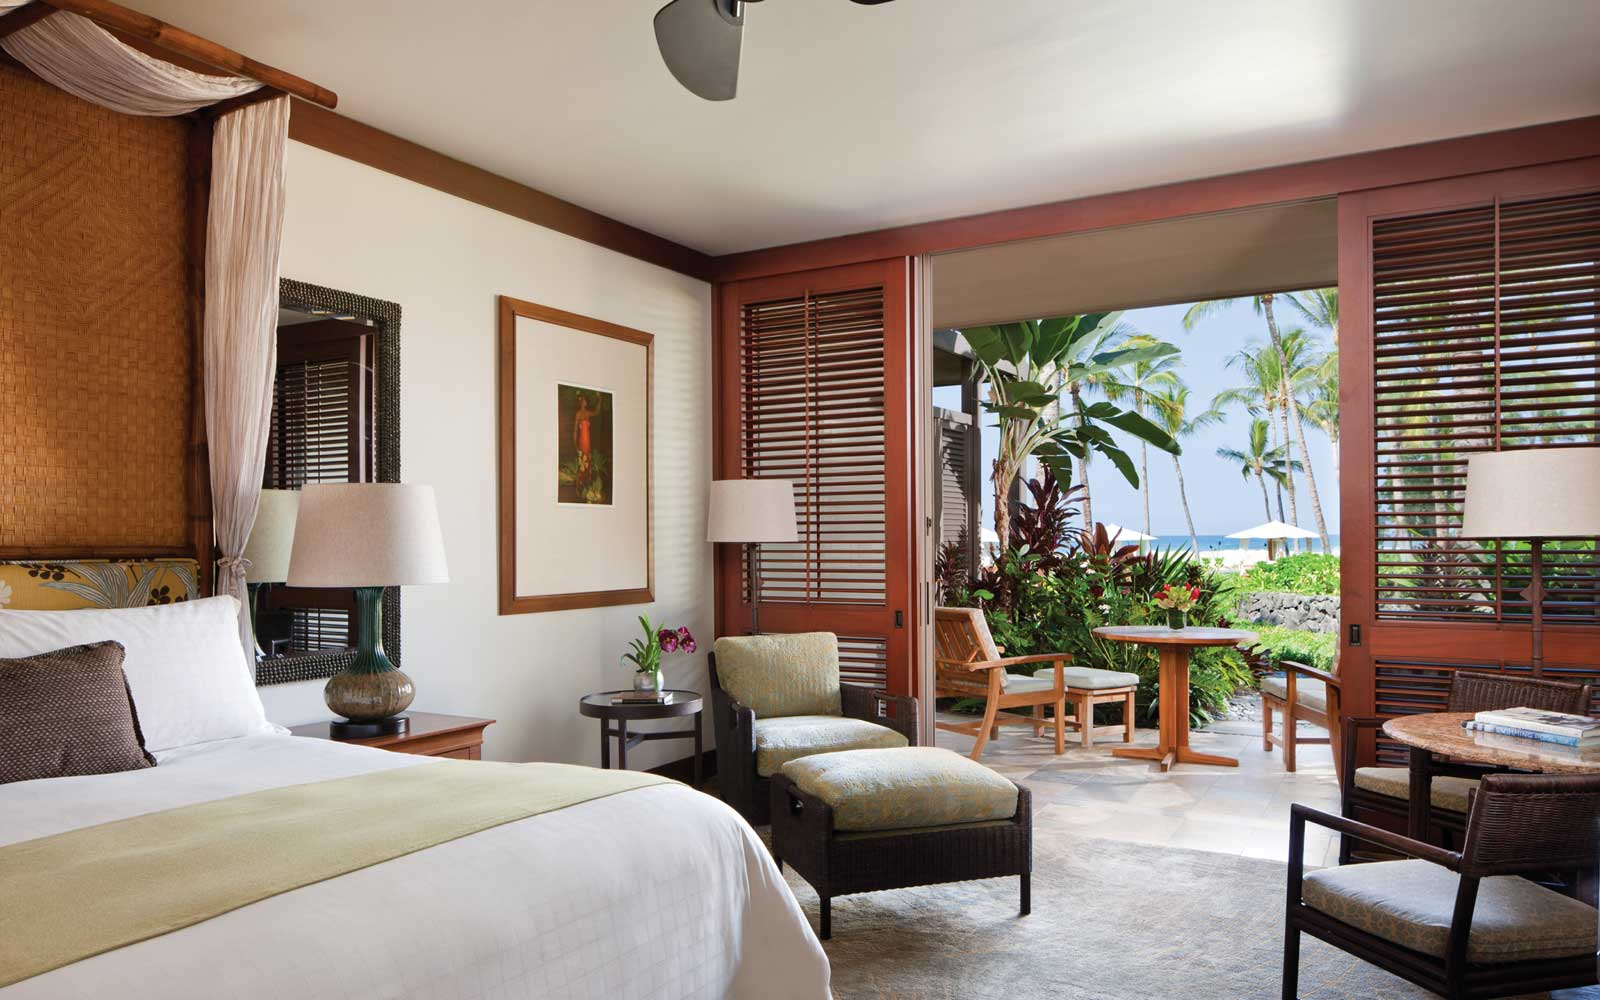 Inside a suite at the Four Seasons Resort Hualalai, in Hawaii